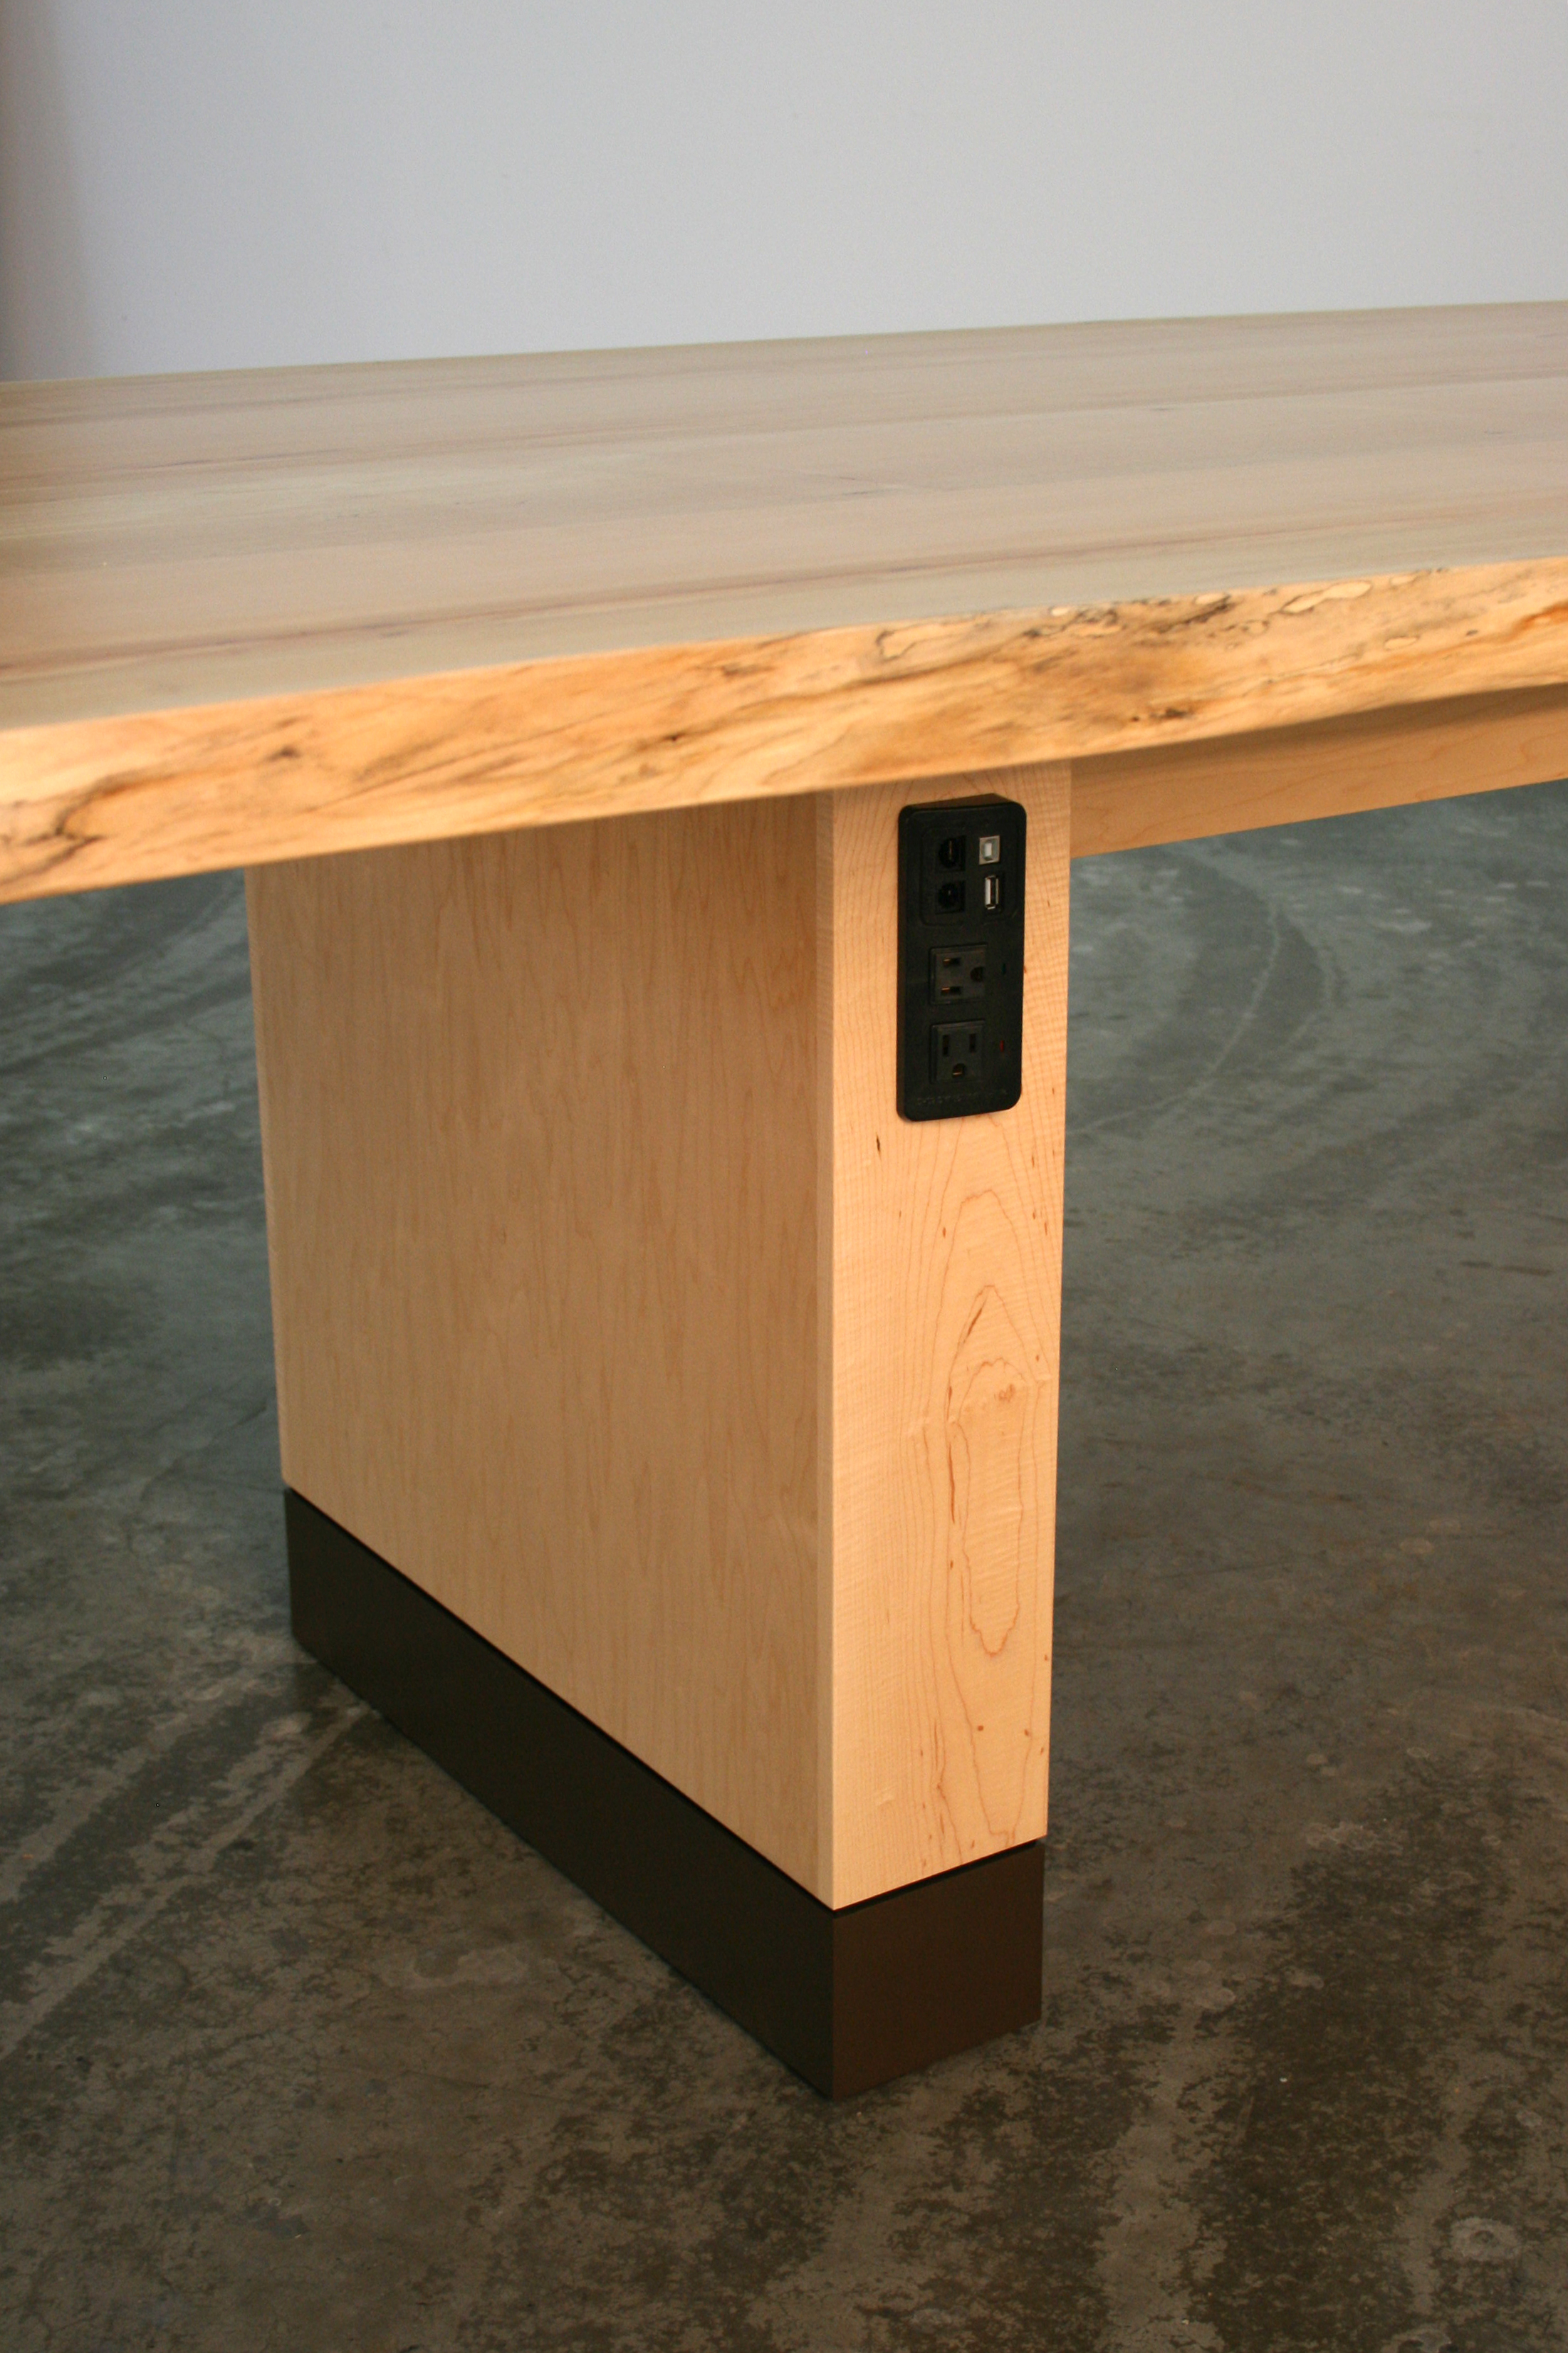 Live edge Maple t able in Clear finish with FNLT1 data unit in box base.